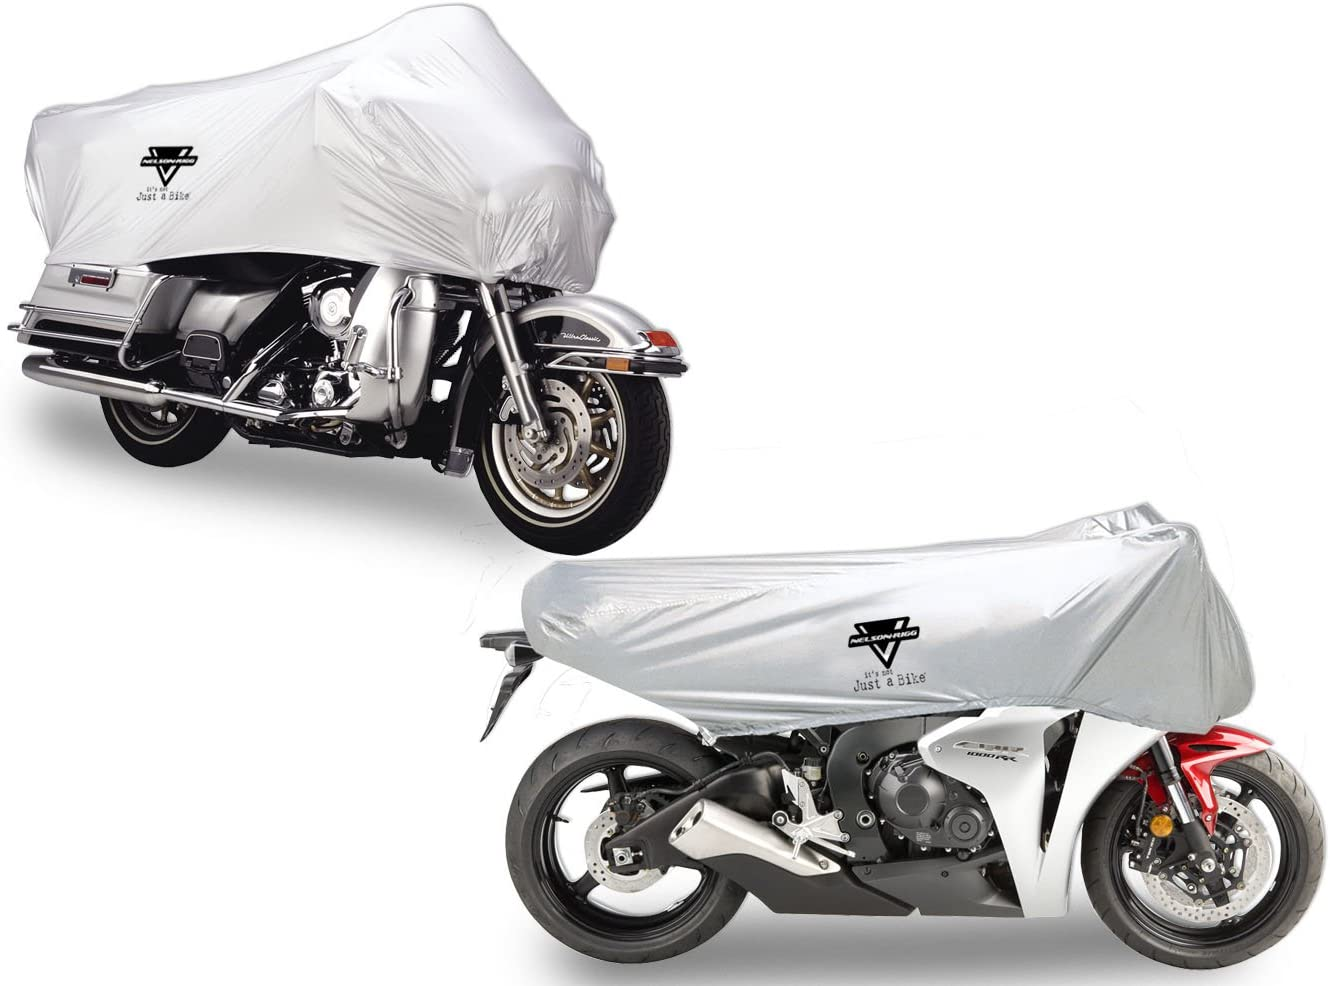 Honda Goldwing and BMW R1200GS Nelson-Rigg UV-2000 Motorcycle Half Cover 100/% Waterproof UV All-Weather X-Large Fits most Touring and Adventure motorcycles like Harley Davidson Ultra Taped Seams Free Stuff Sack